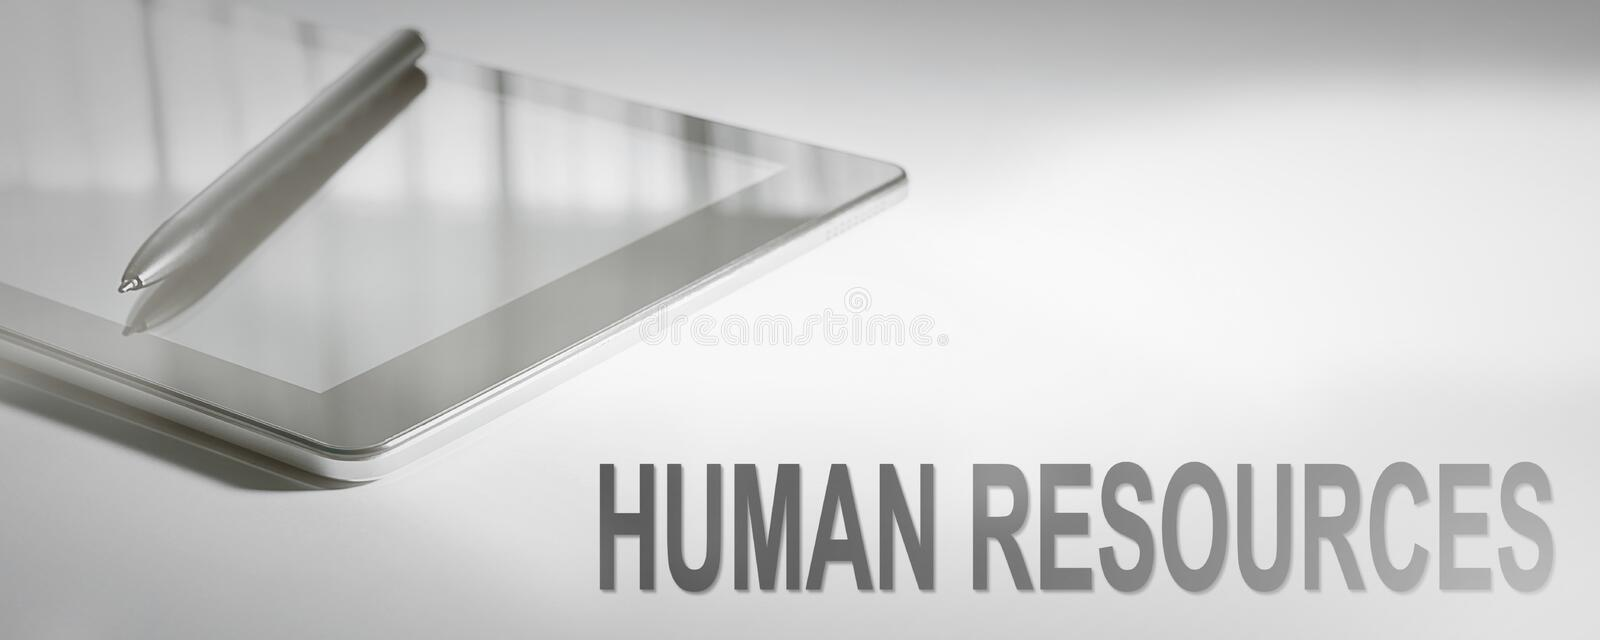 HUMAN RESOURCES Business Concept Digital Technology. royalty free stock image